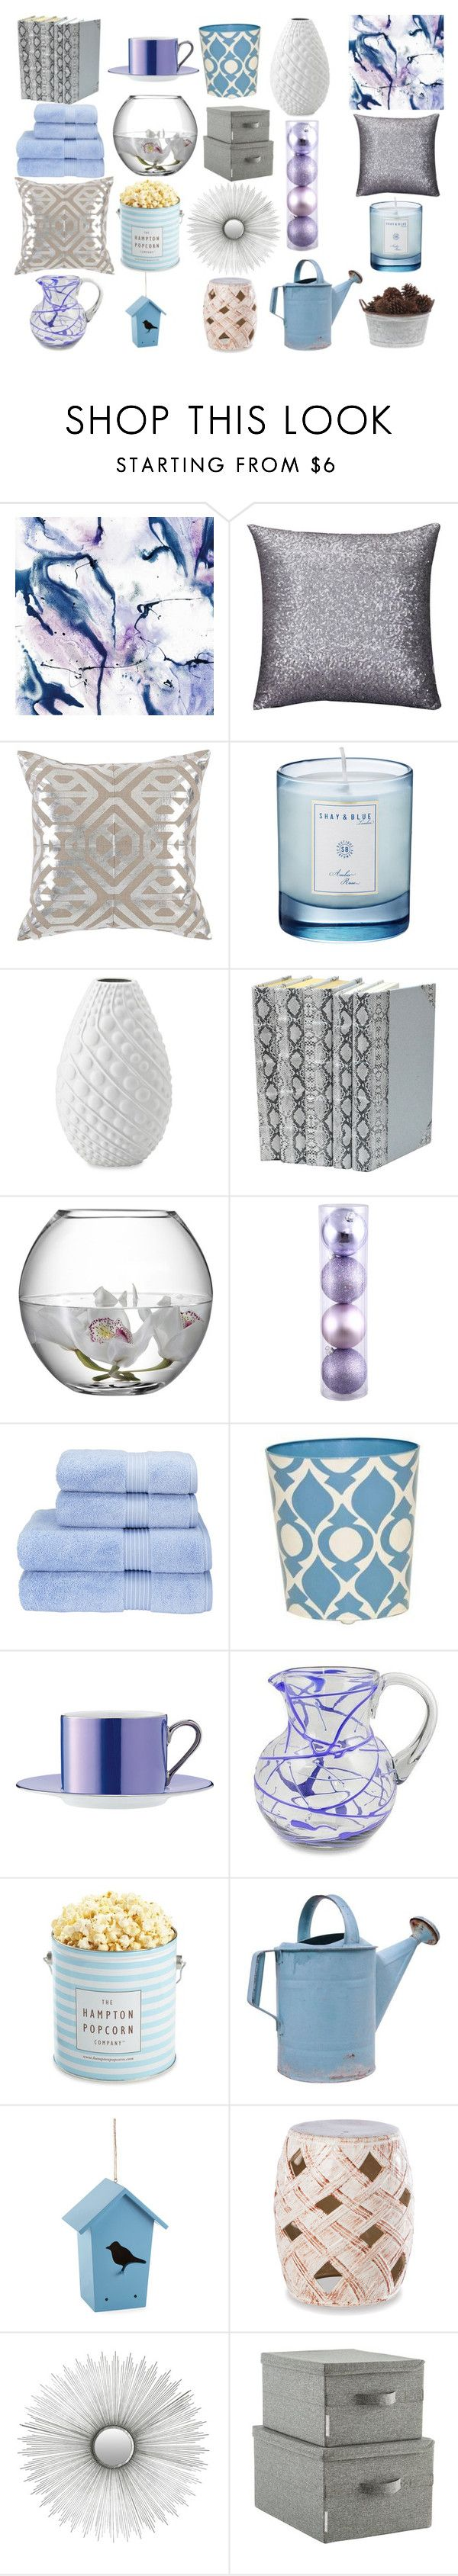 """""""Blue/Lilac Home Decor"""" by kat-van-d ❤ liked on Polyvore featuring interior, interiors, interior design, home, home decor, interior decorating, WALL, Shay & Blue, Bombay and LSA International"""